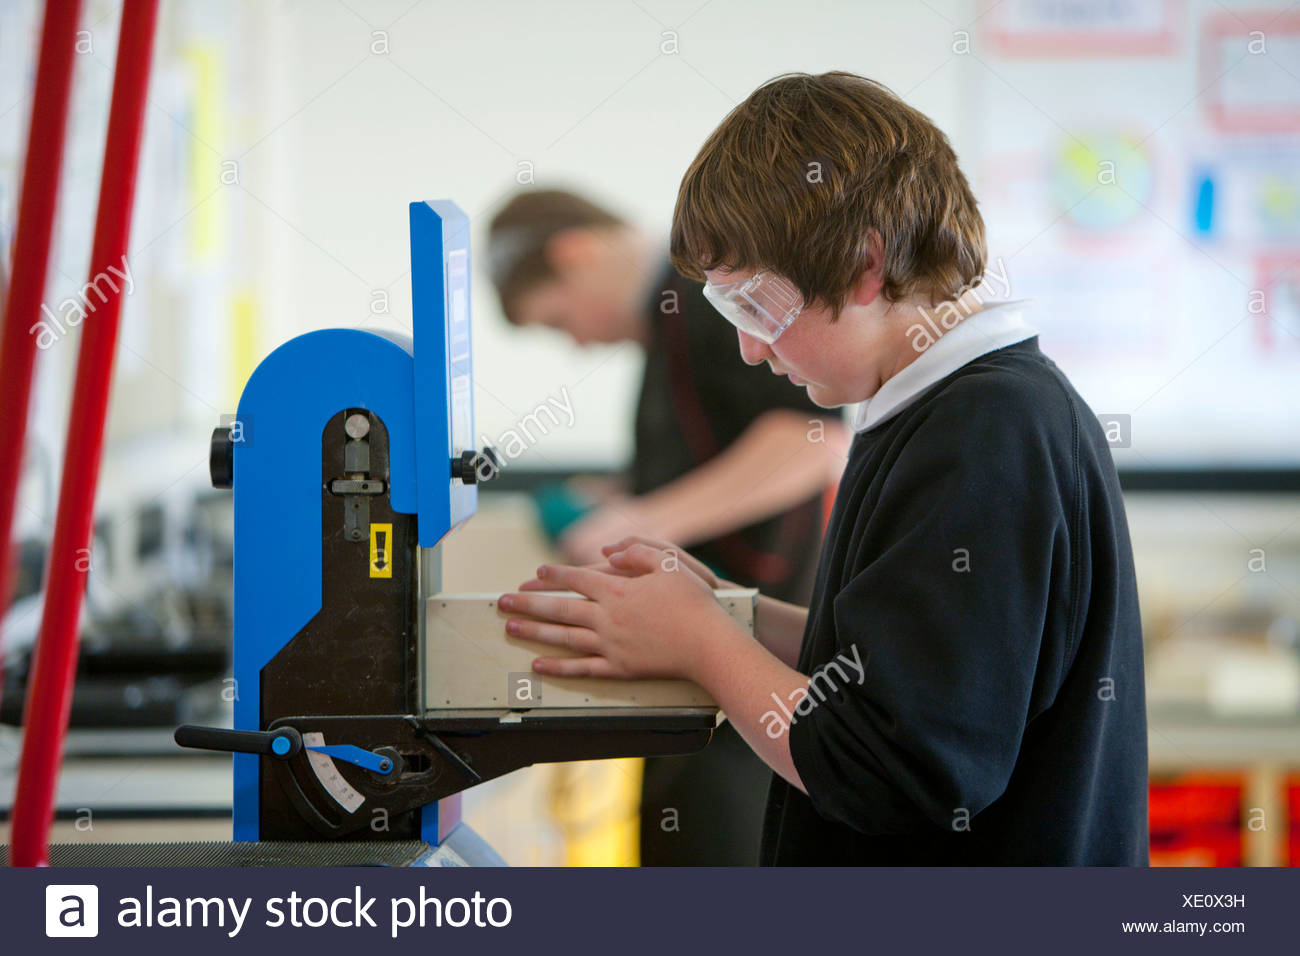 Boy with goggles using woodworking machinery in classroom - Stock Image